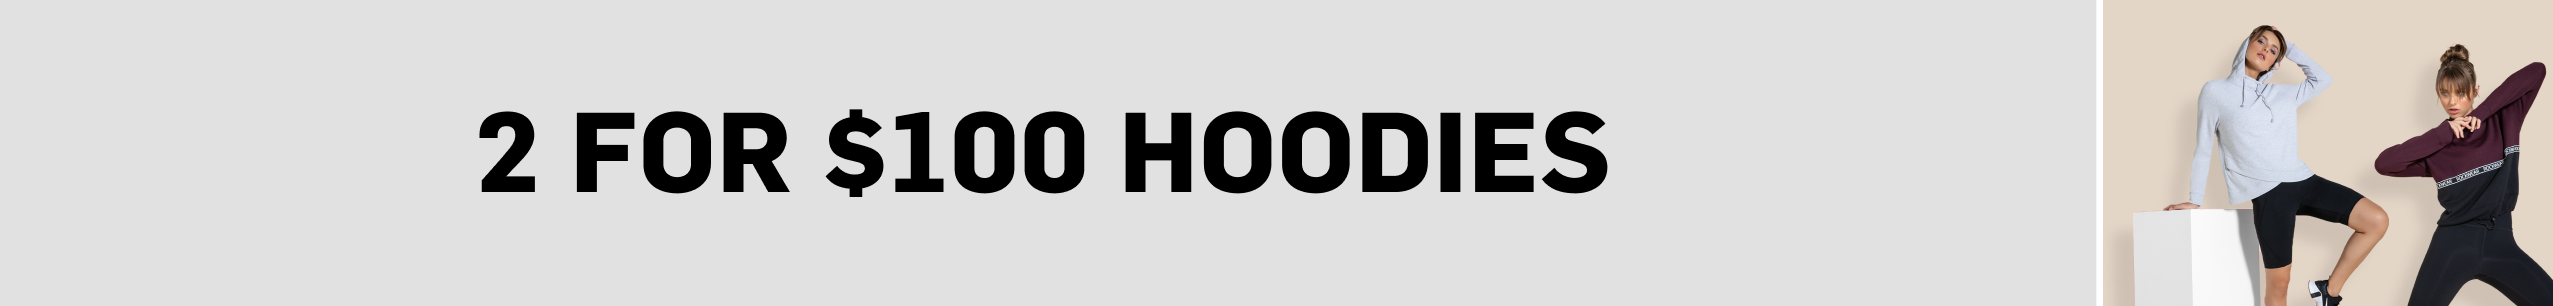 2 for $100 Hoodies